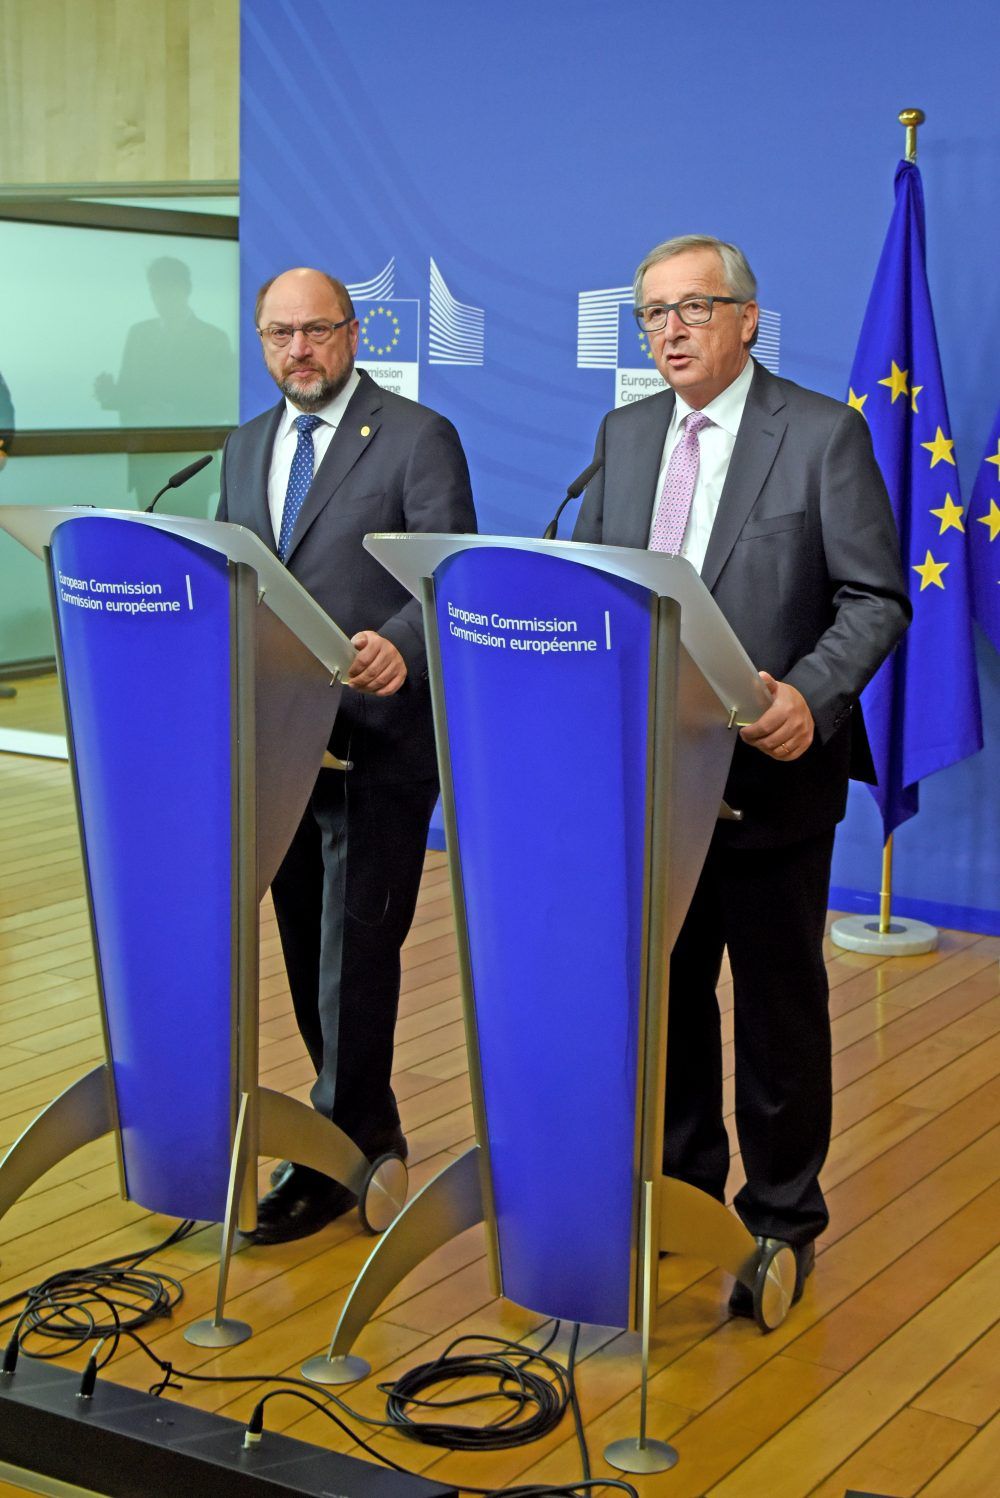 Martin Schulz, on the left, and Jean-Claude Juncker